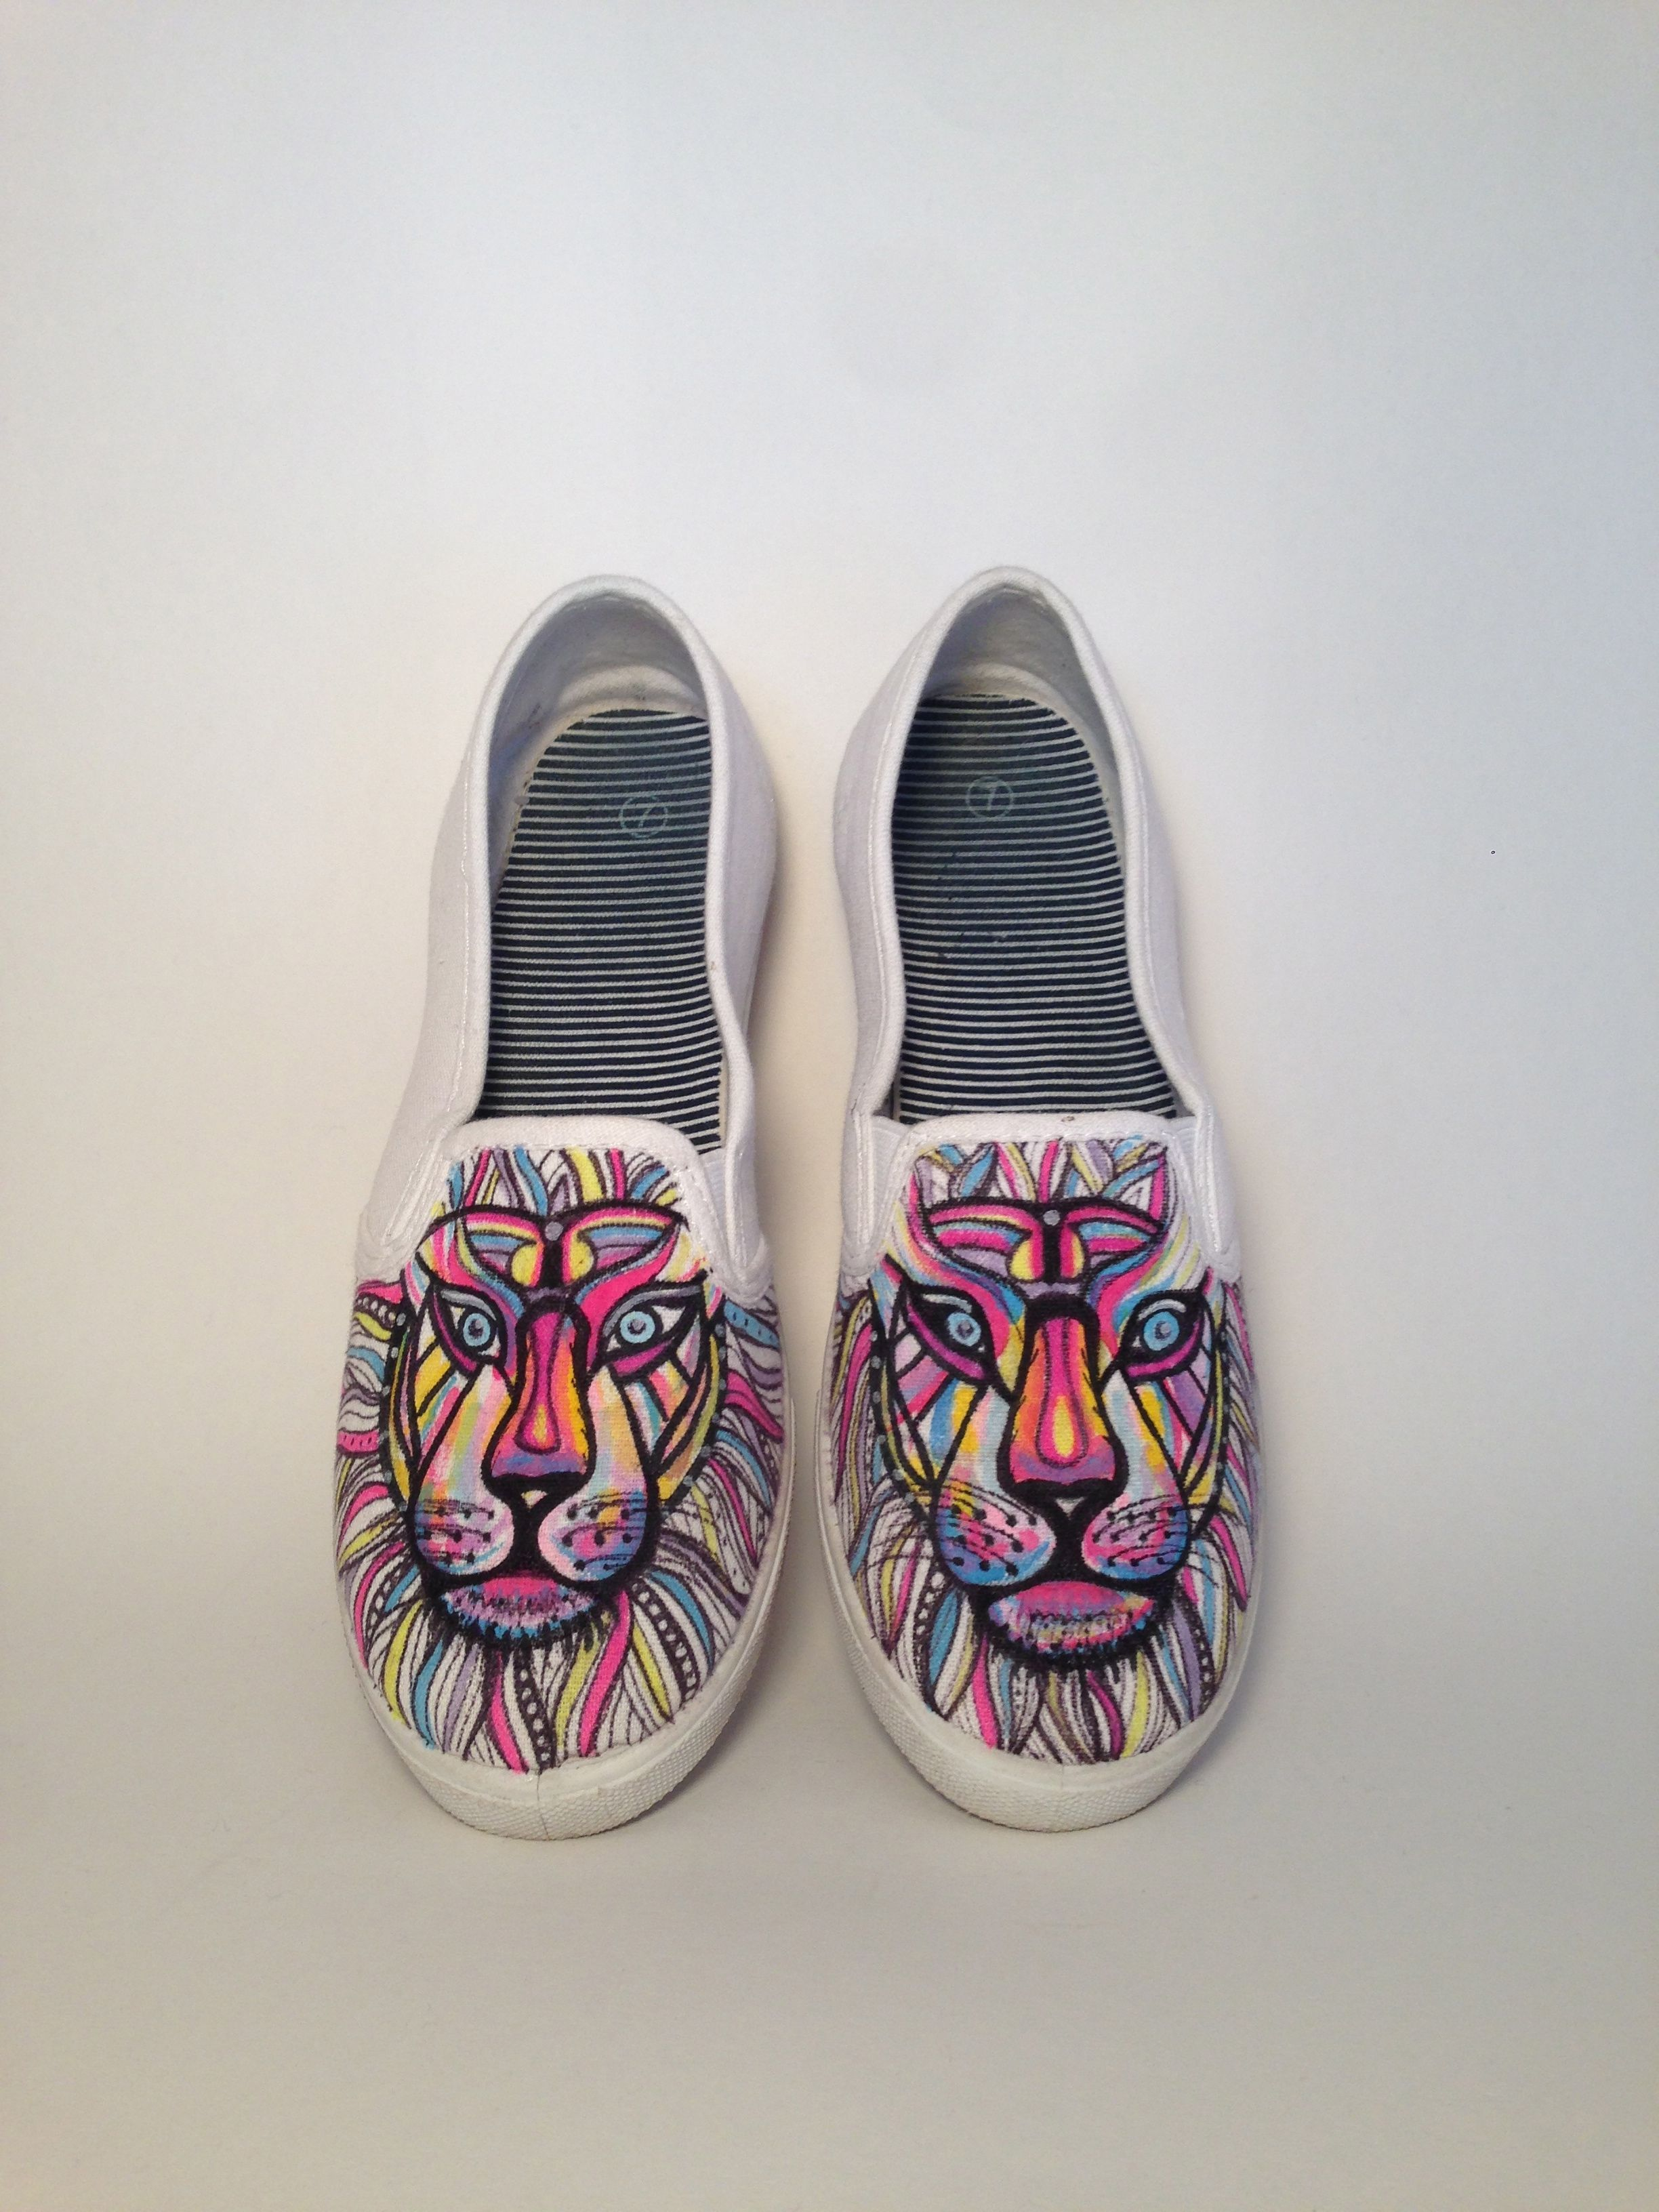 keds - custom keds - women's shoes - handpainted canvas shoes